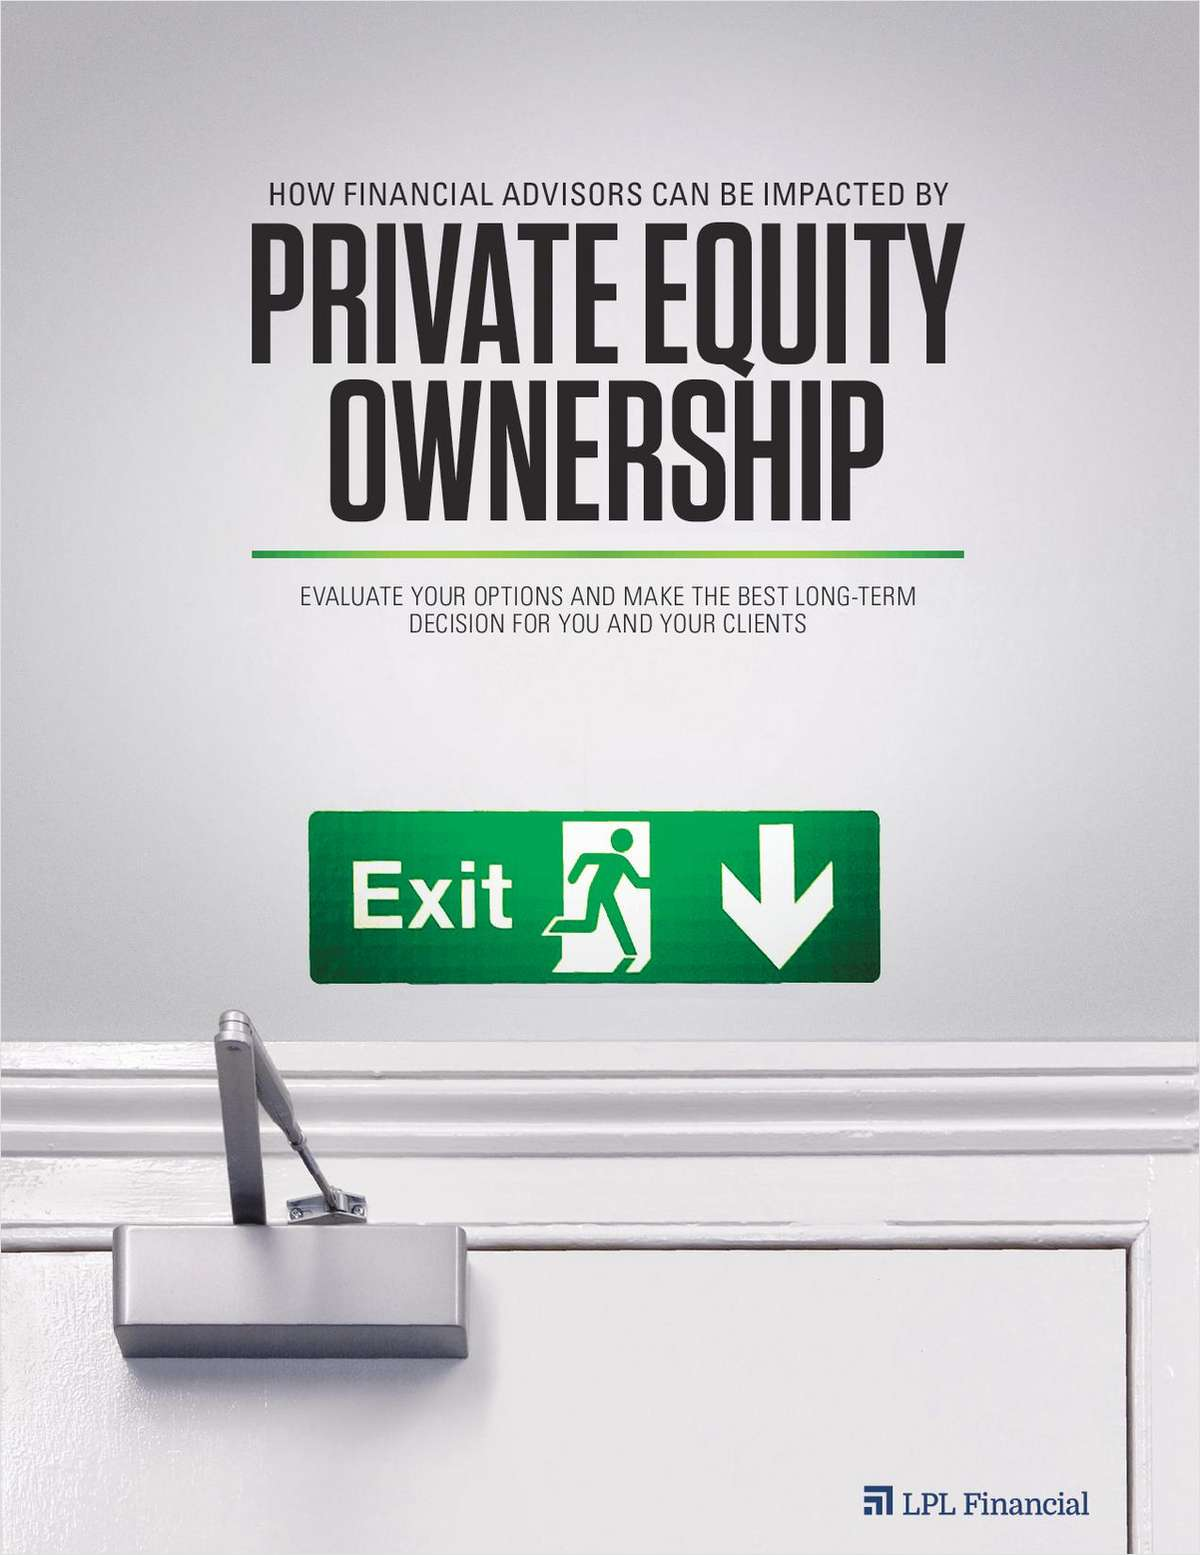 How Financial Advisors Can Be Impacted By Private Equity Ownership